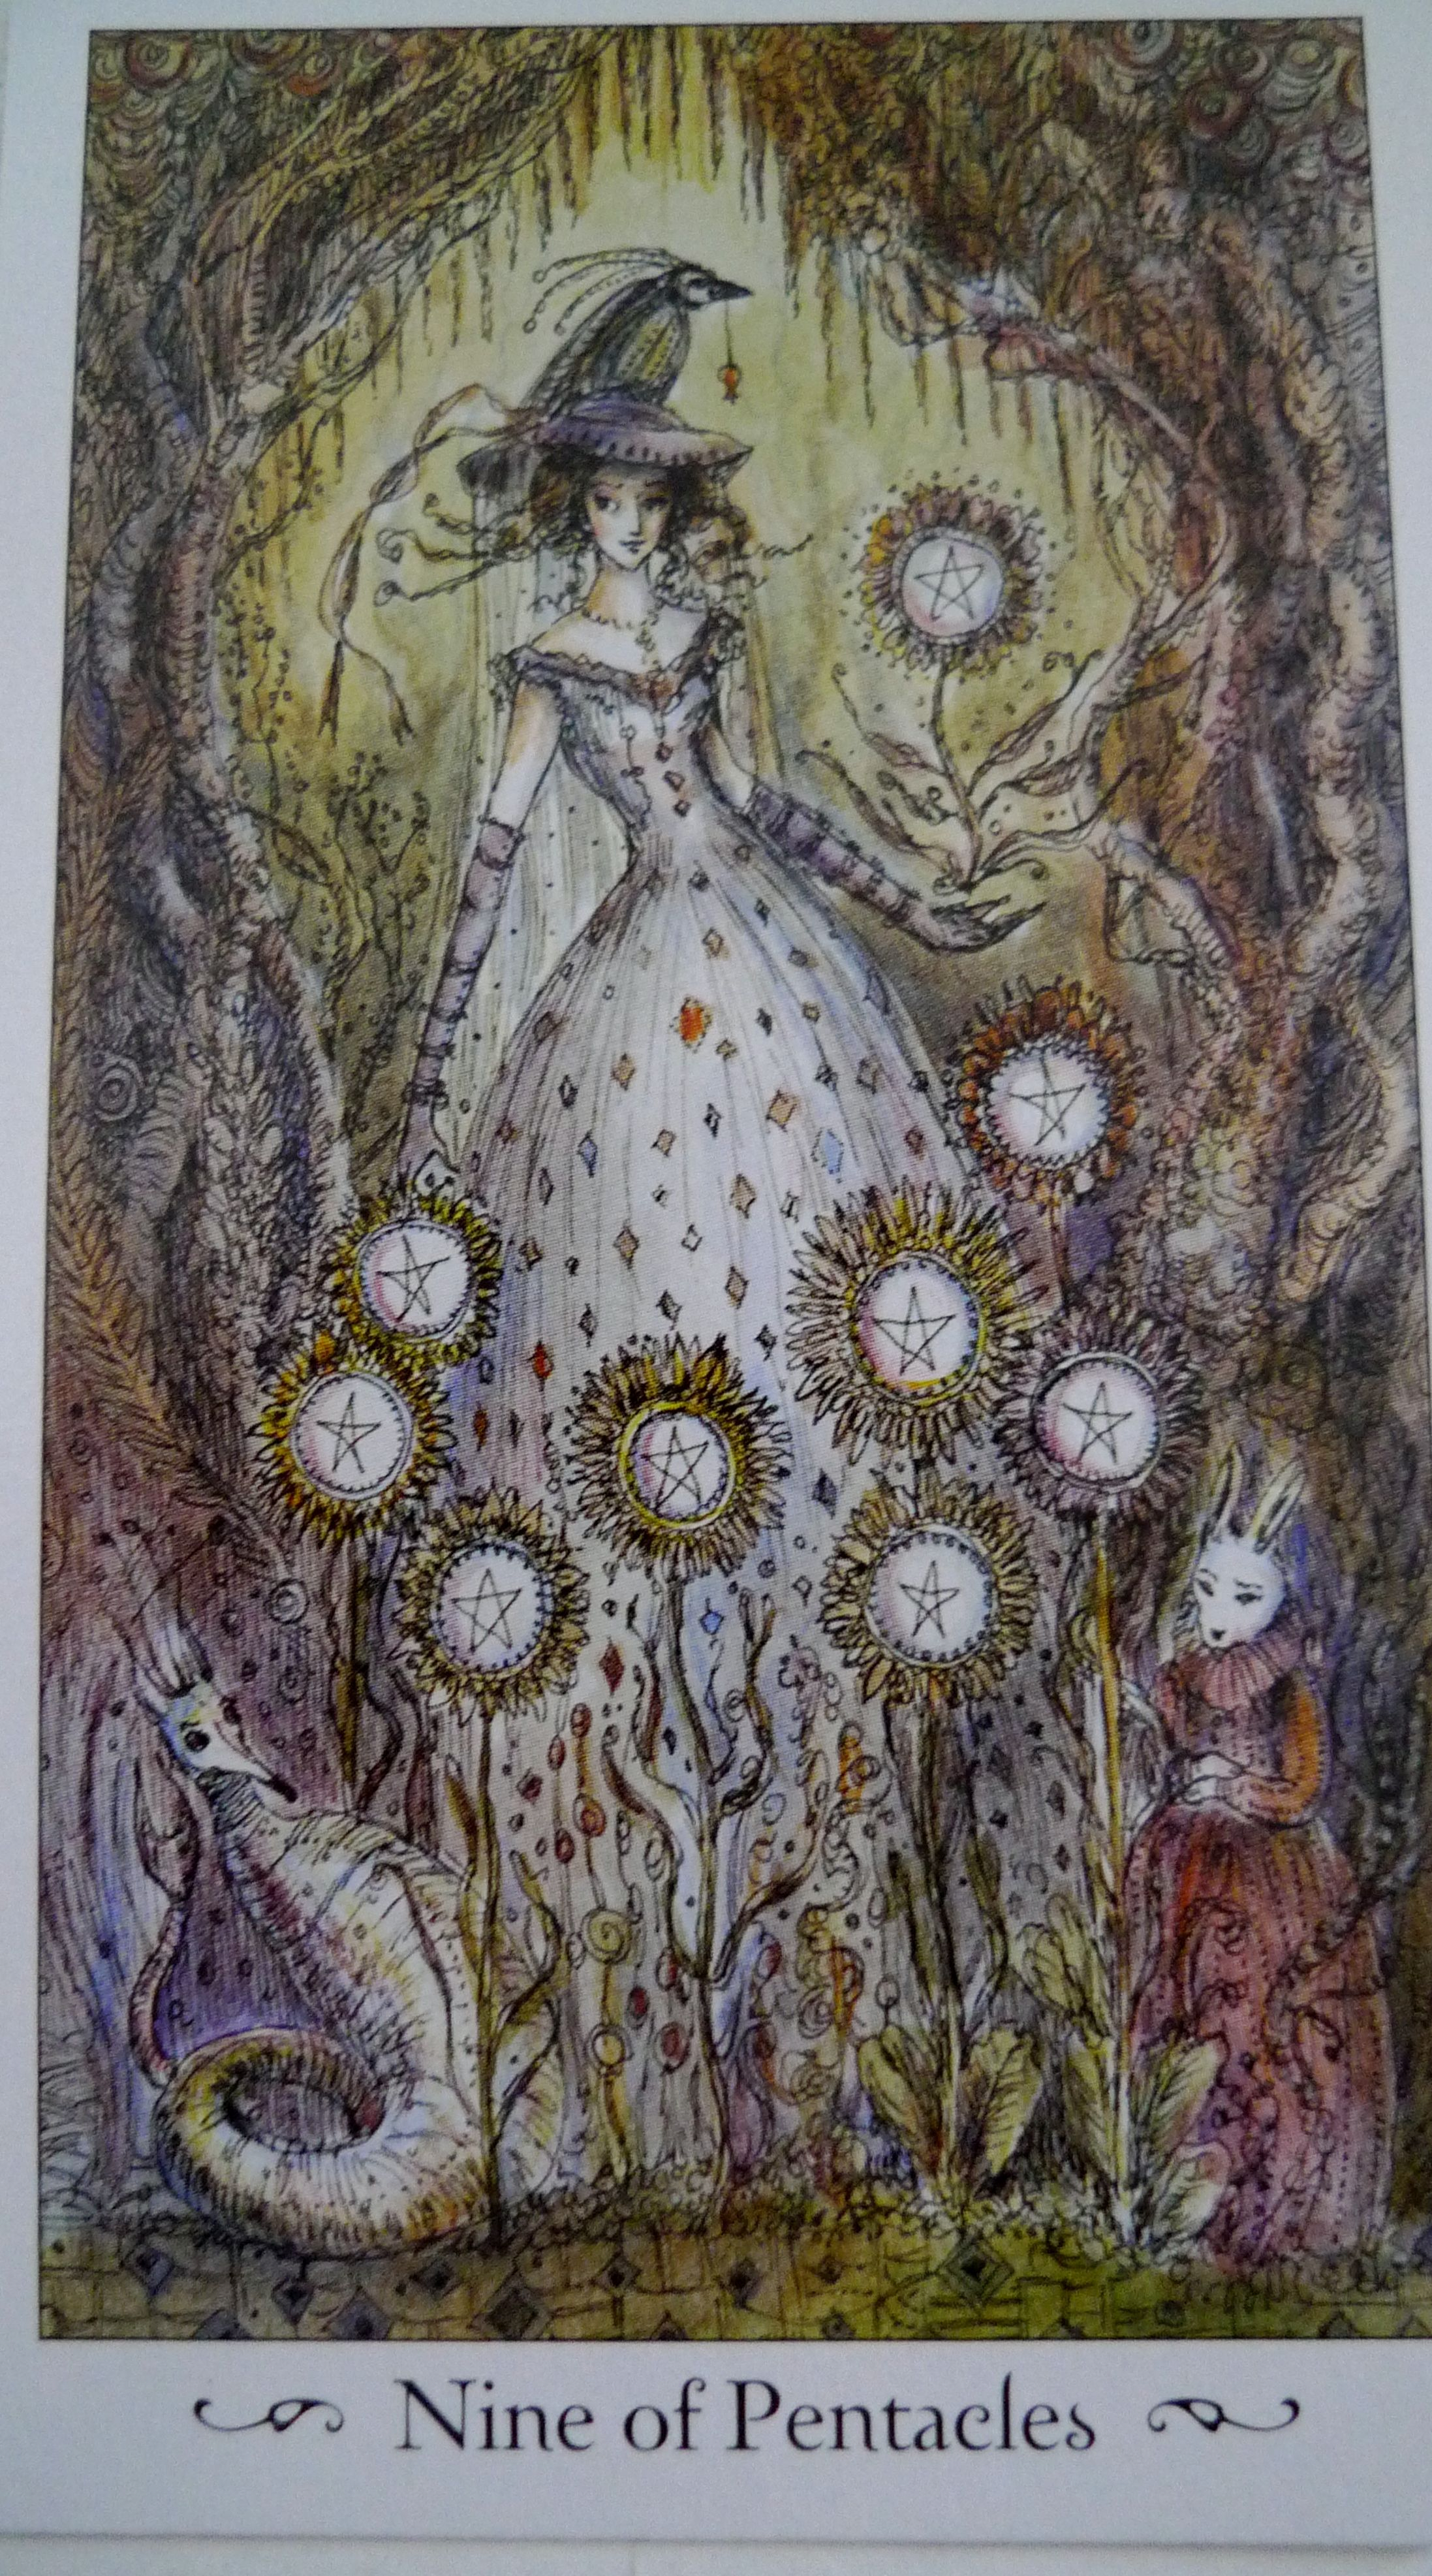 4.9.12 Tarot Card Of The Day: Nine Of Pentacles